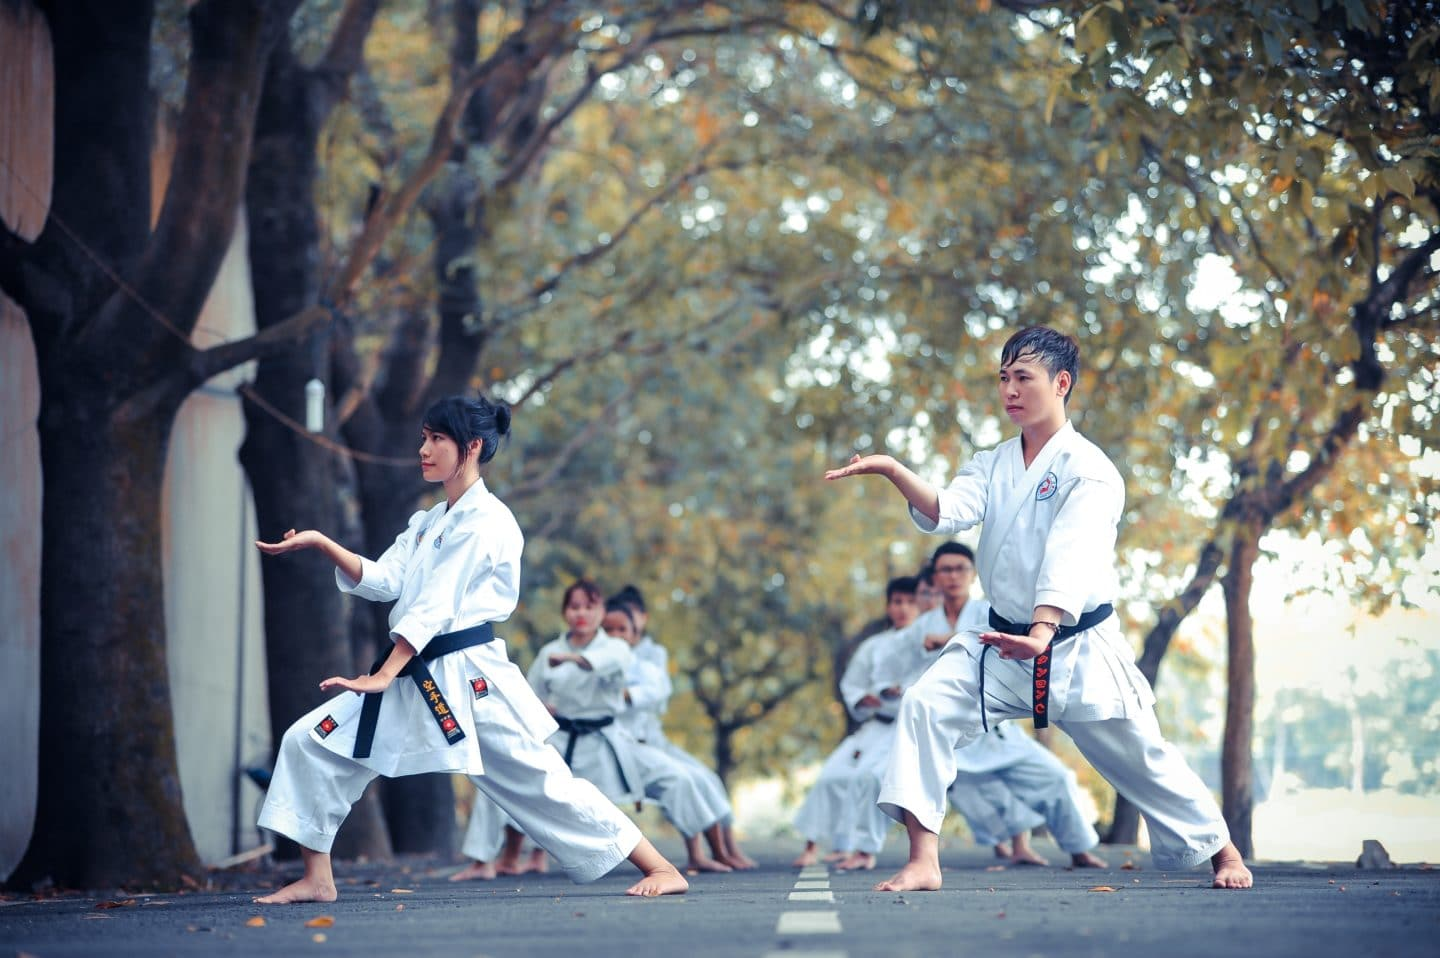 Health benefits of international martial arts forms [Infographic]